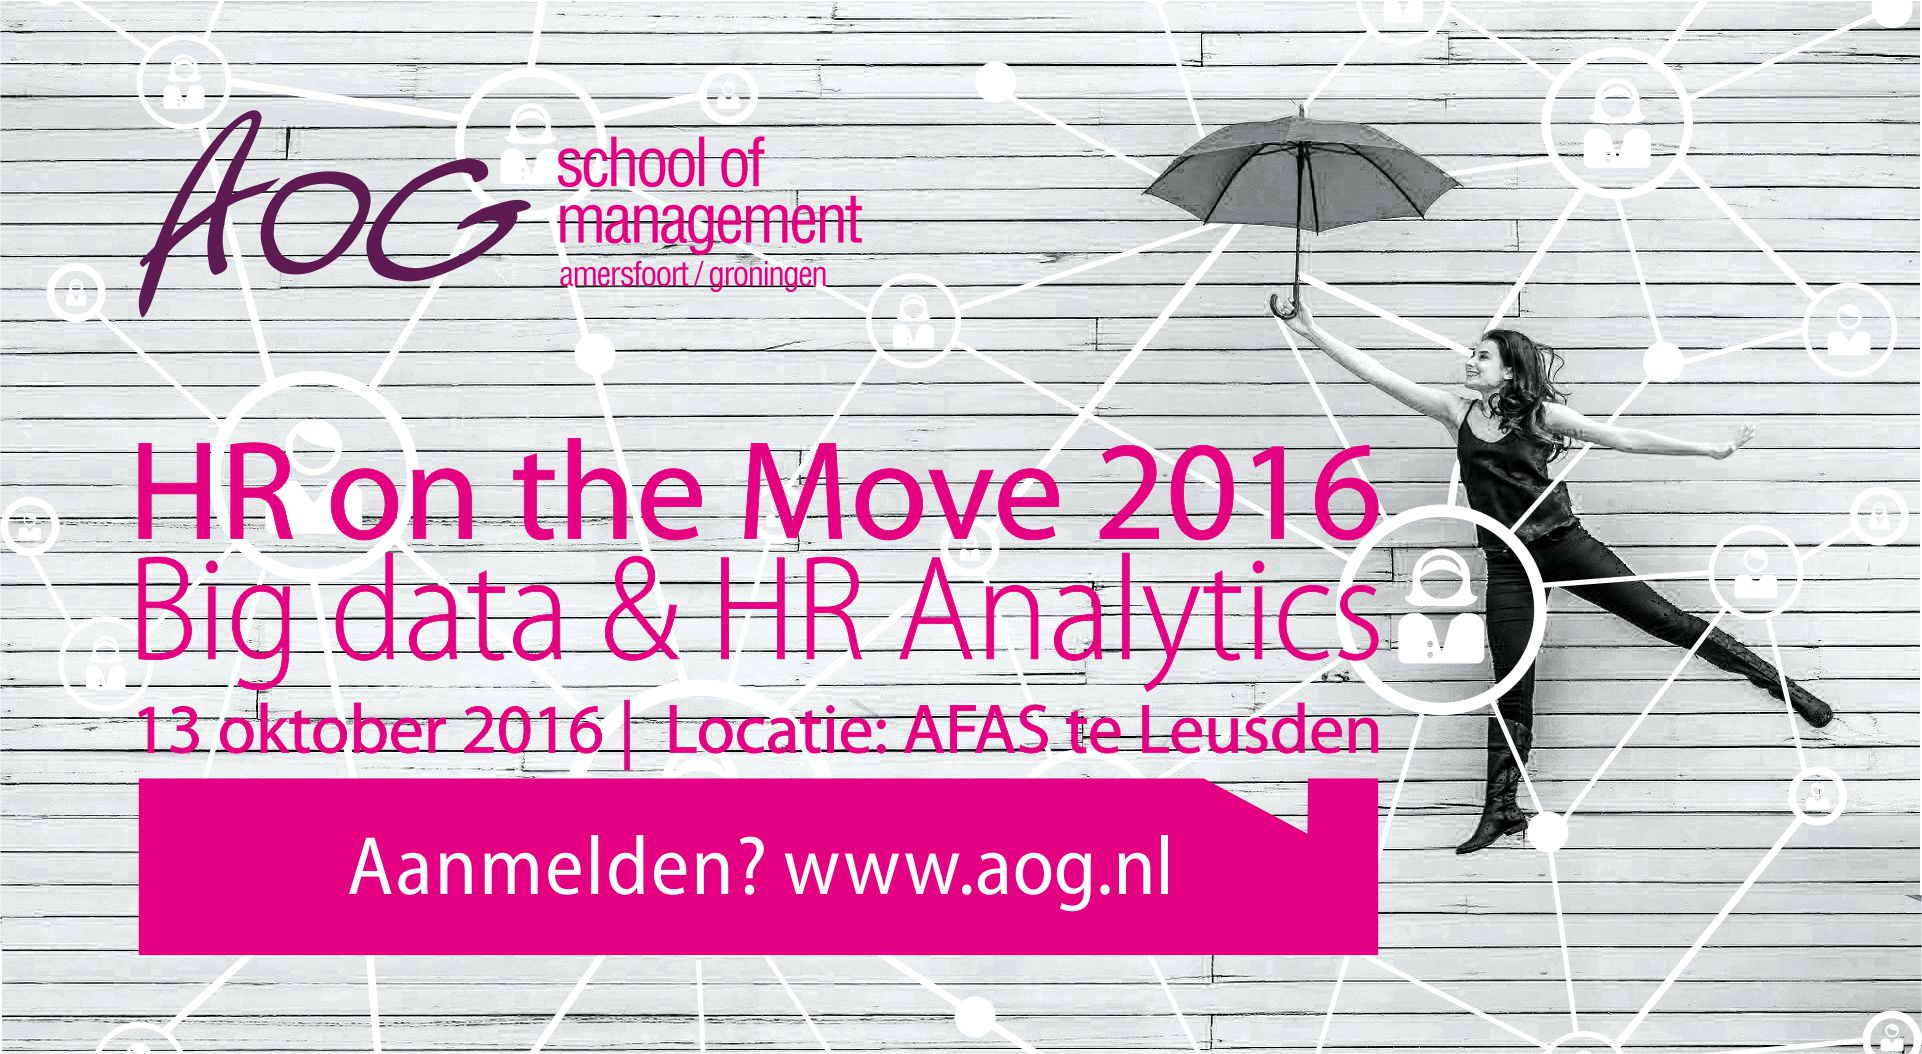 HR on the Move